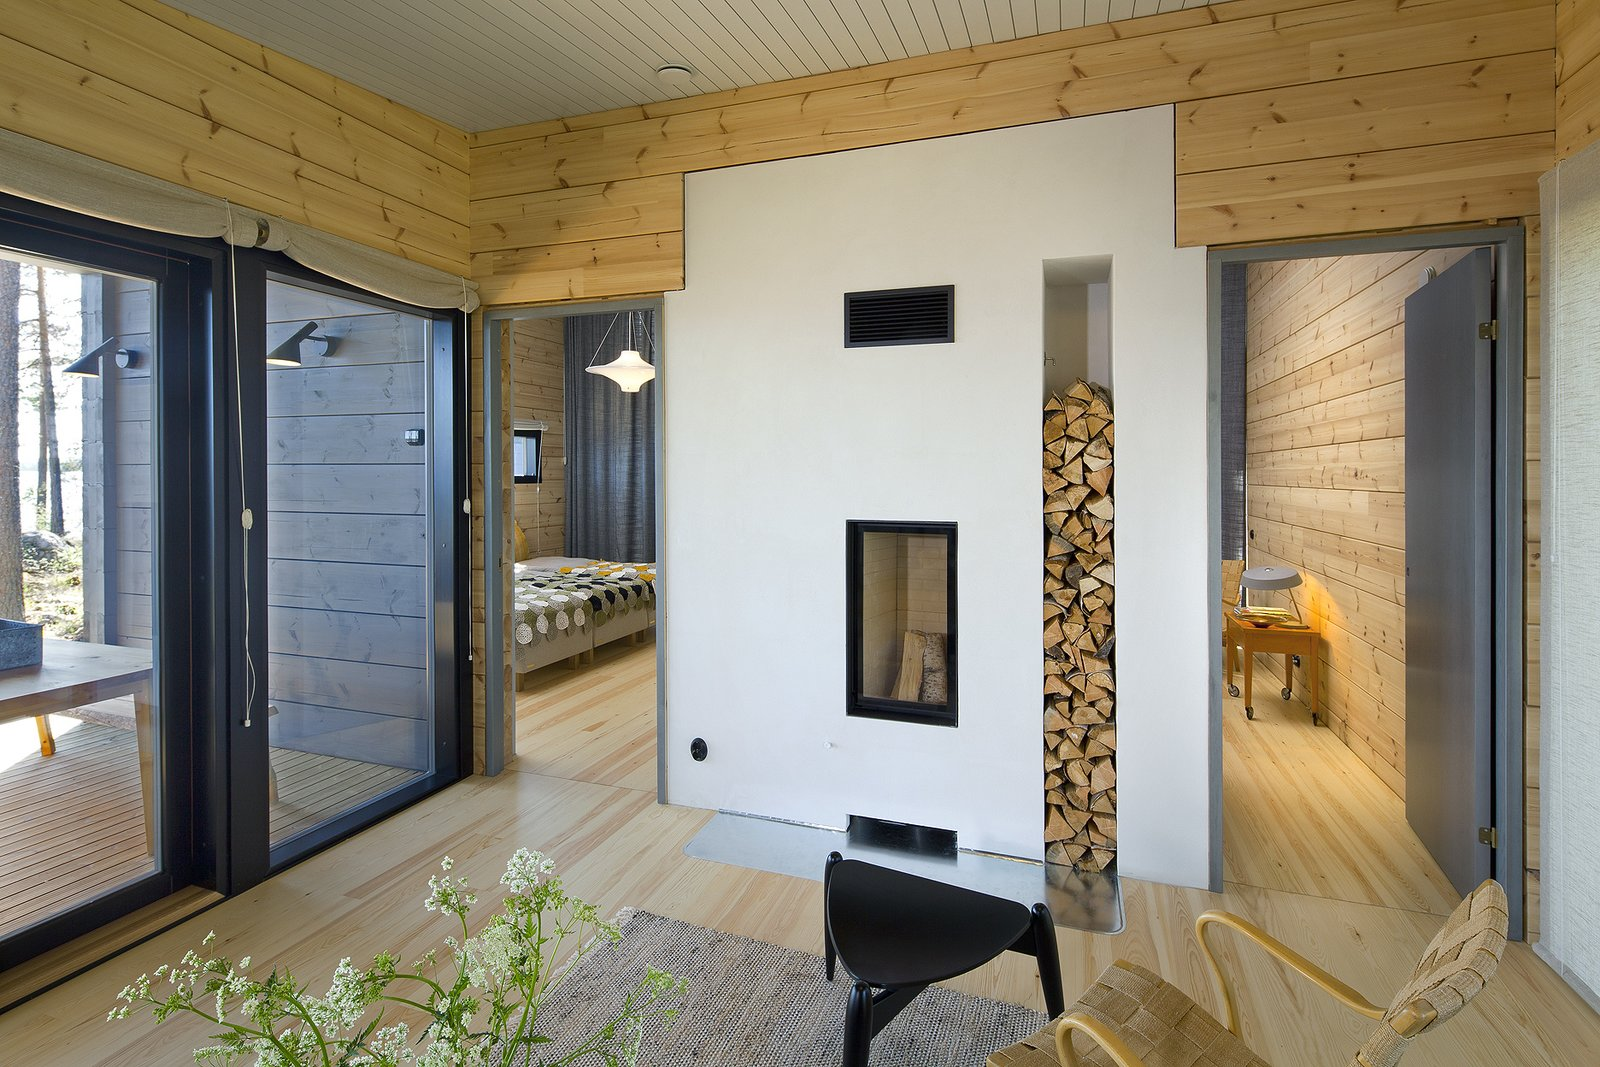 The simple interior decor, and natural materials like wood and stone help this holiday home harmonize with its environment.  Photo 13 of 21 in These 8 Log Cabin Kit Homes Celebrate Nordic Minimalism